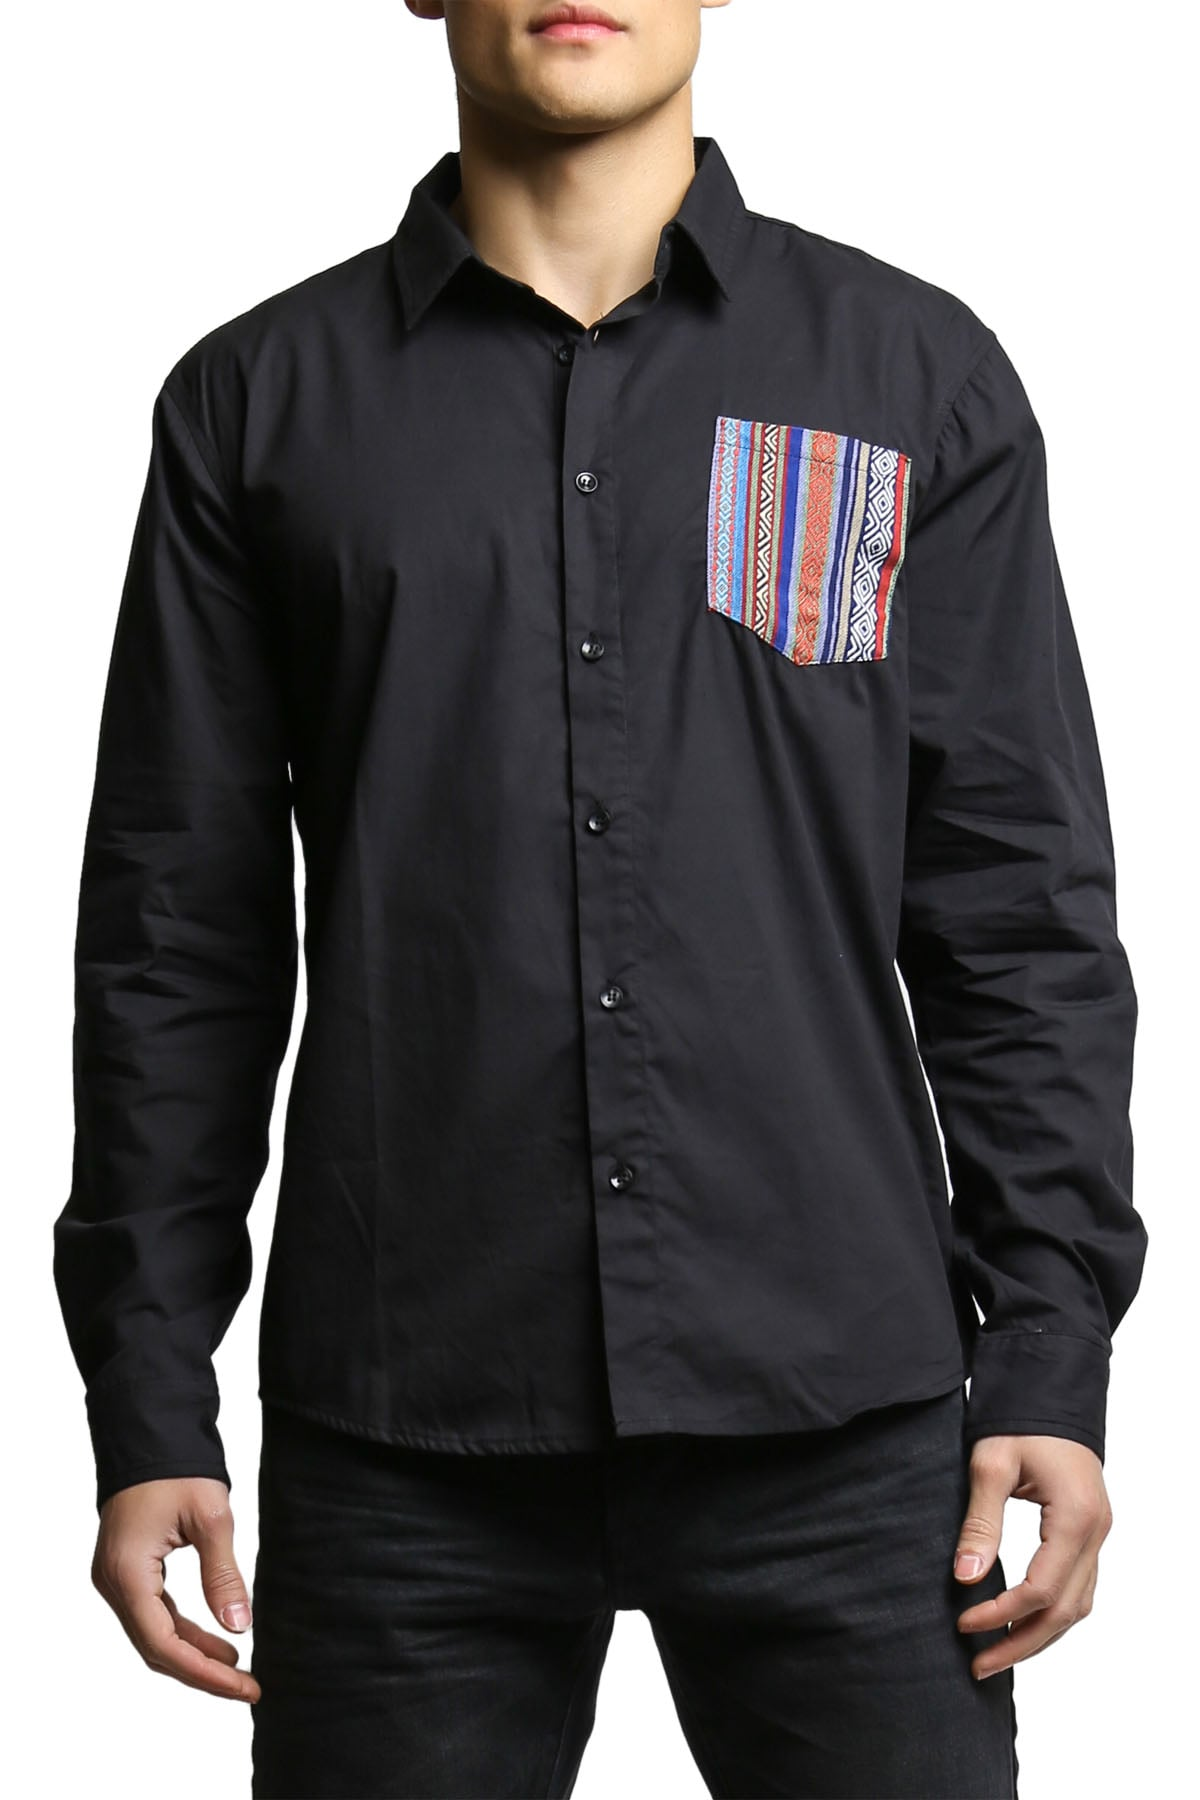 00 Nothing Black Navajo Joe Button-Up